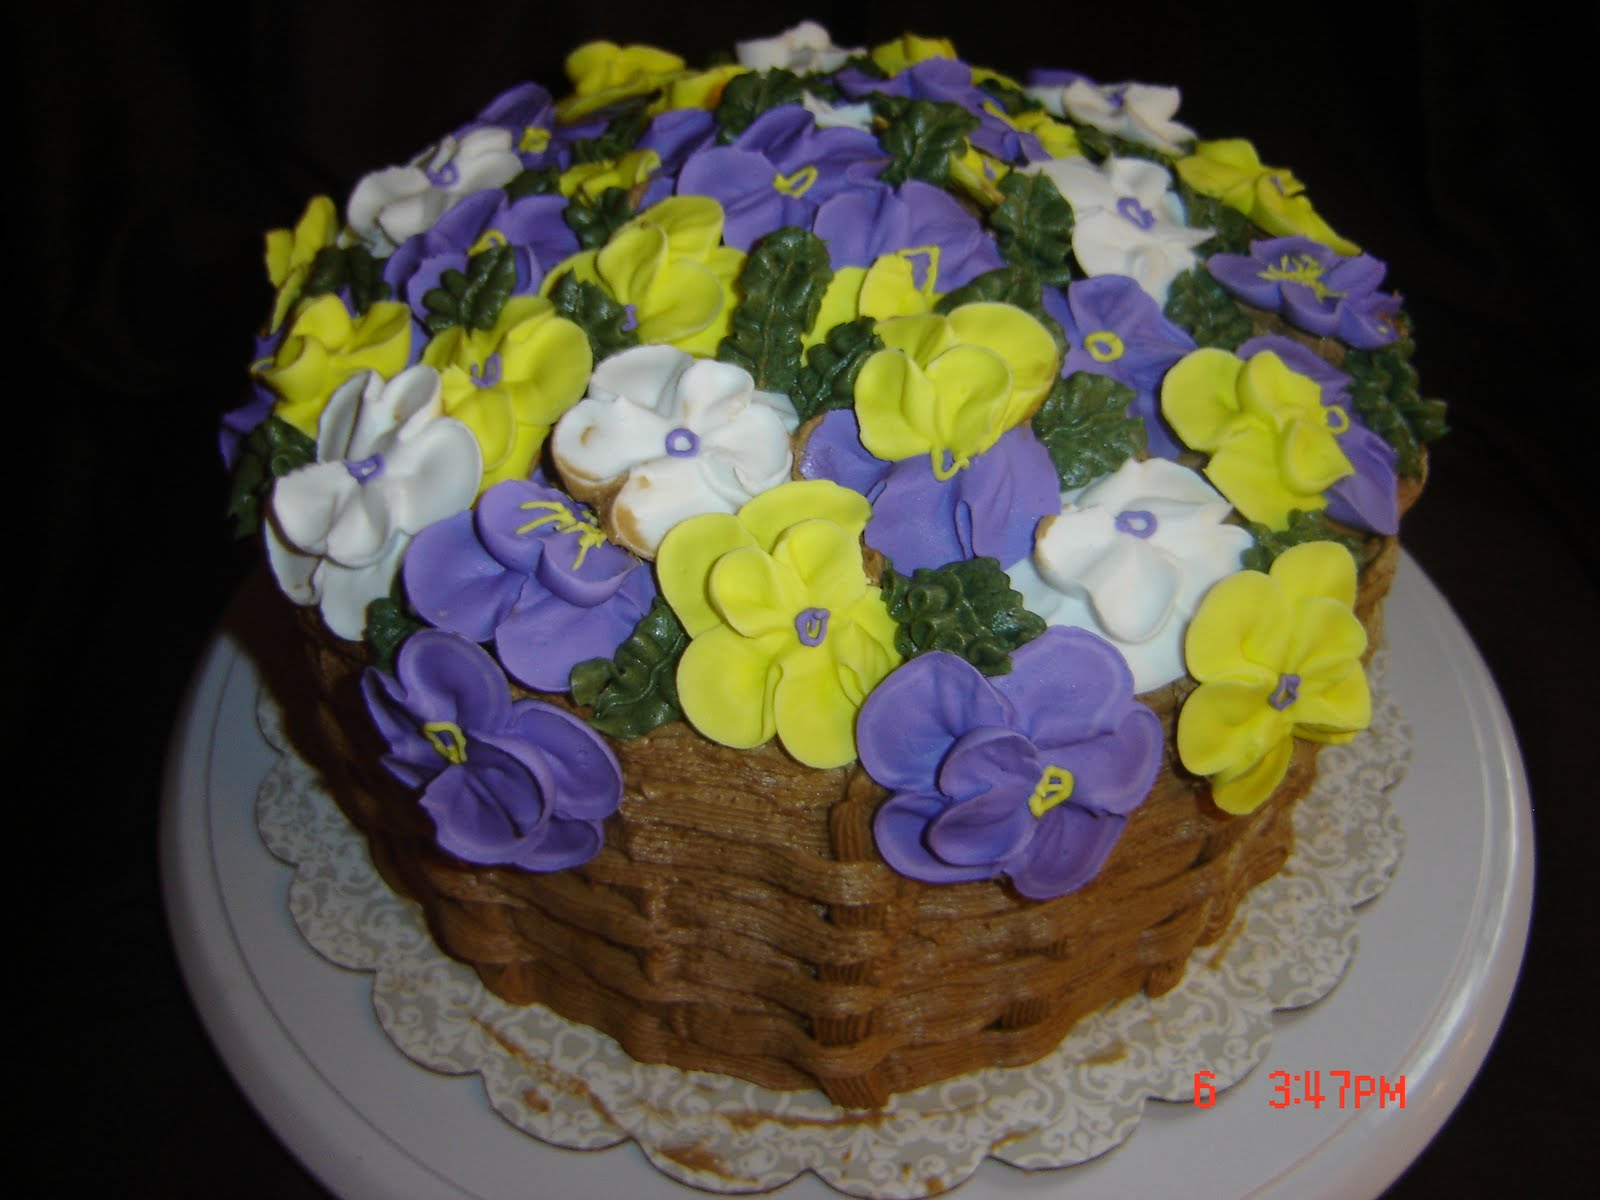 How To Make A Basket Of Flowers Cake : Sweet creations by katie flower basket cake